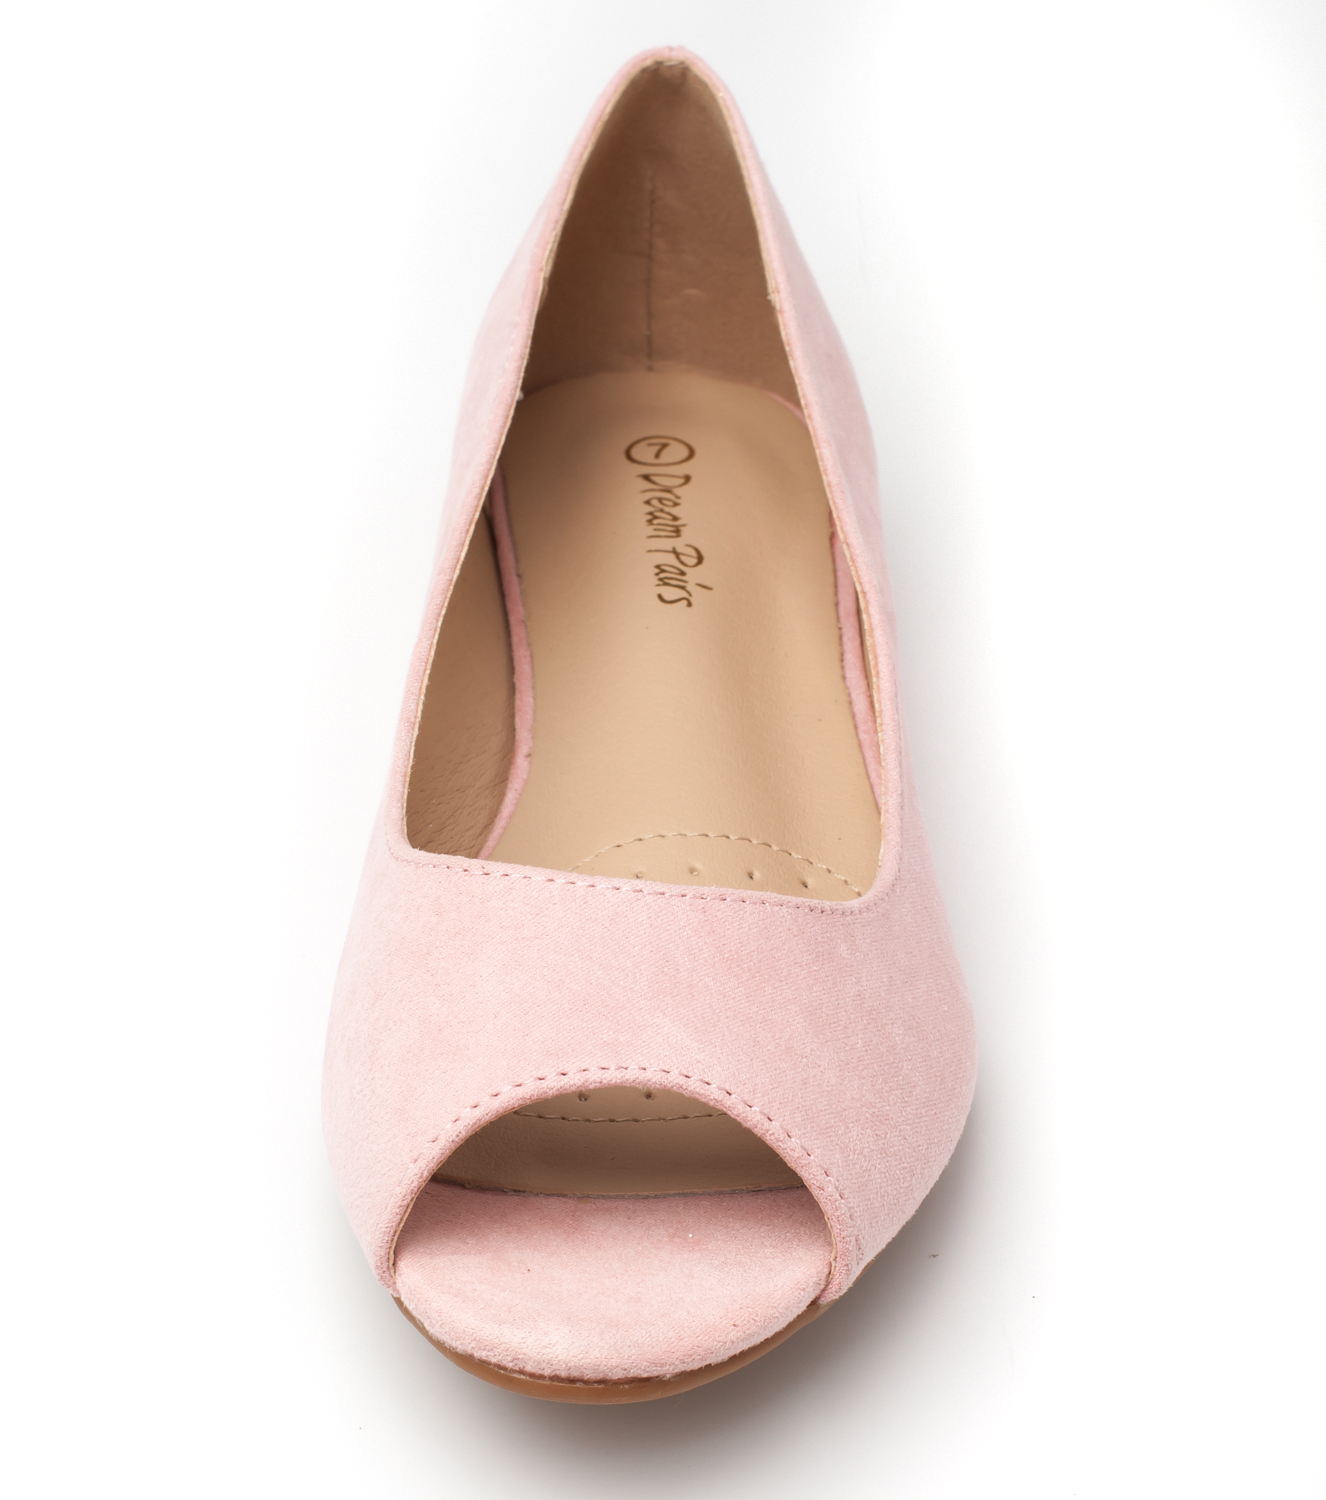 DREAM-PAIRS-Womens-Ballet-Flats-Low-Heel-Open-Toe-Slip-On-Dress-Flat-Shoes thumbnail 9